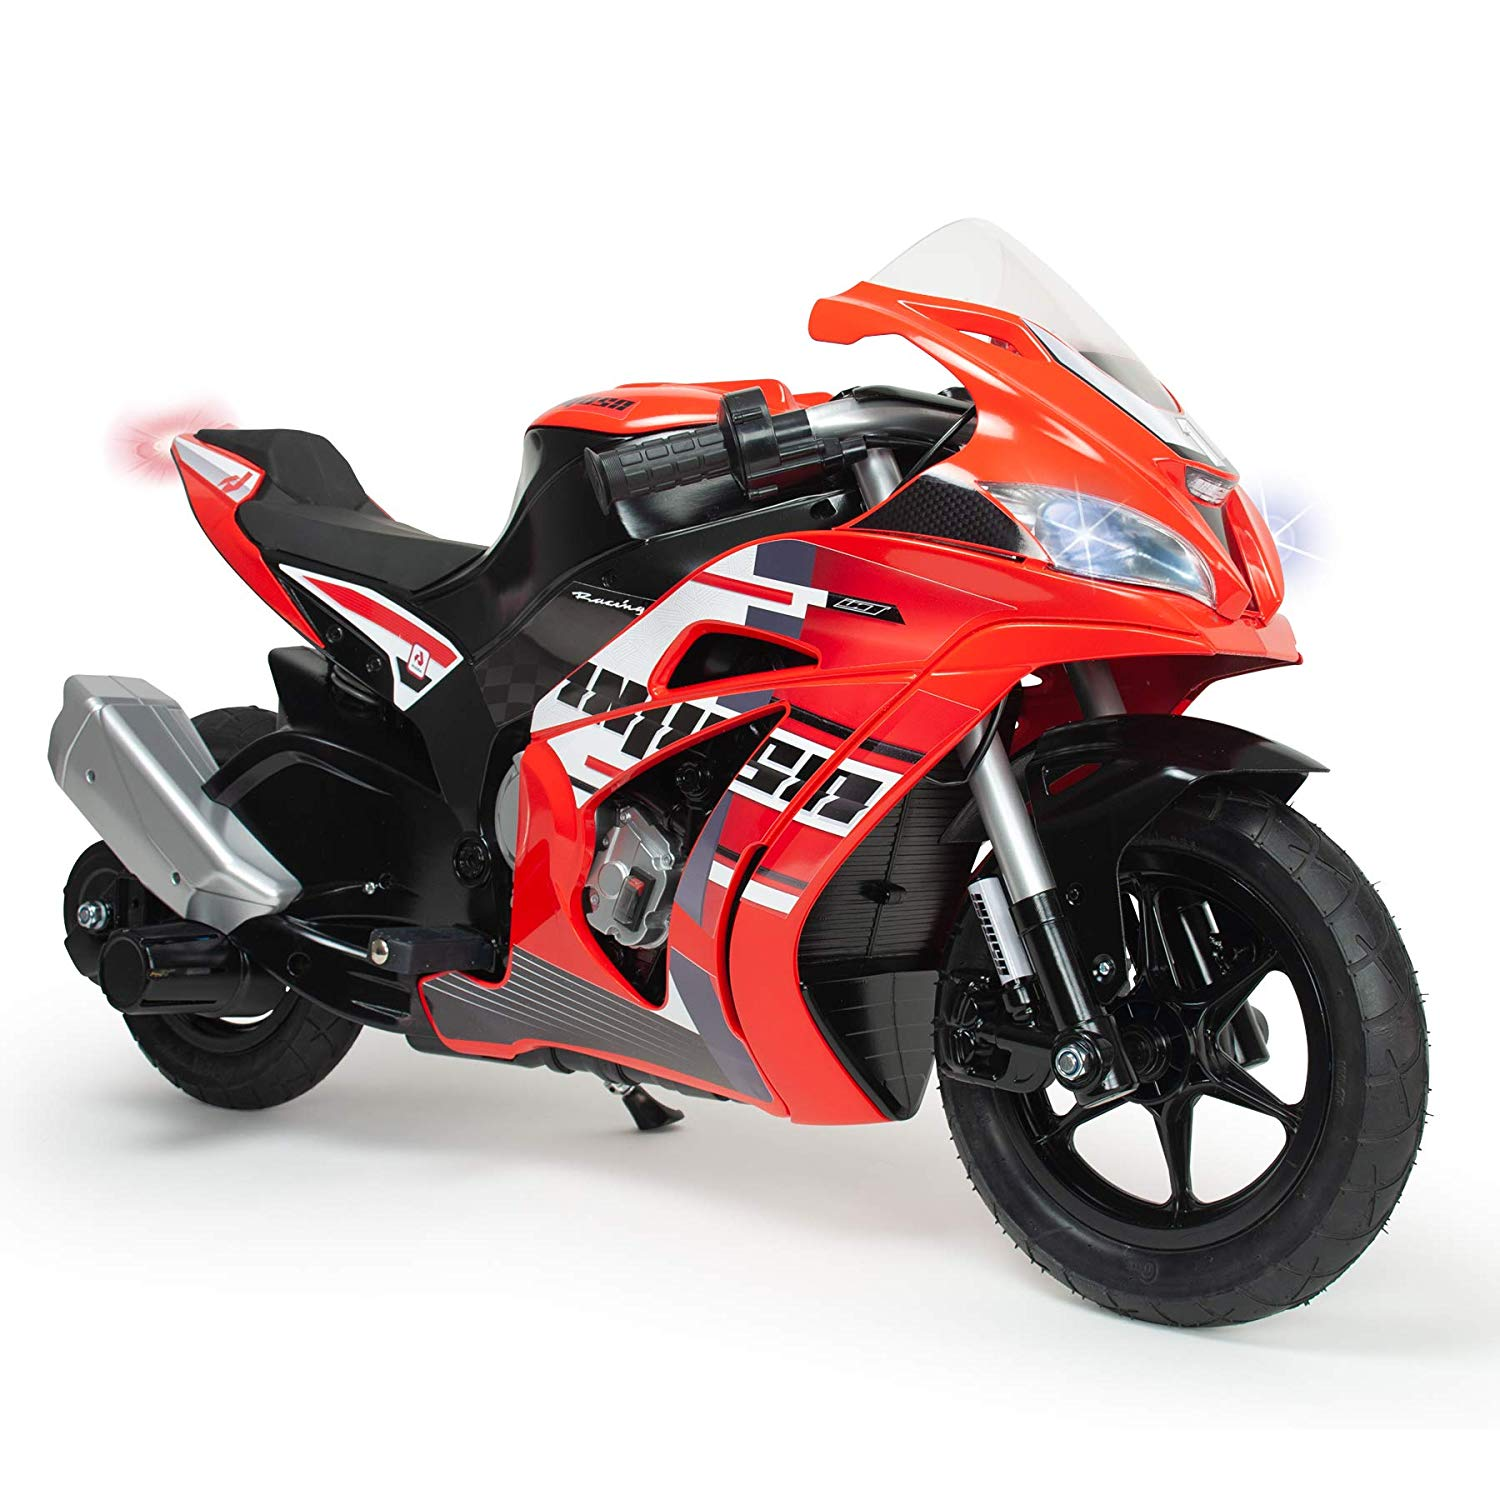 MOTO RACING FIGHTER 24V 6492 - N38619